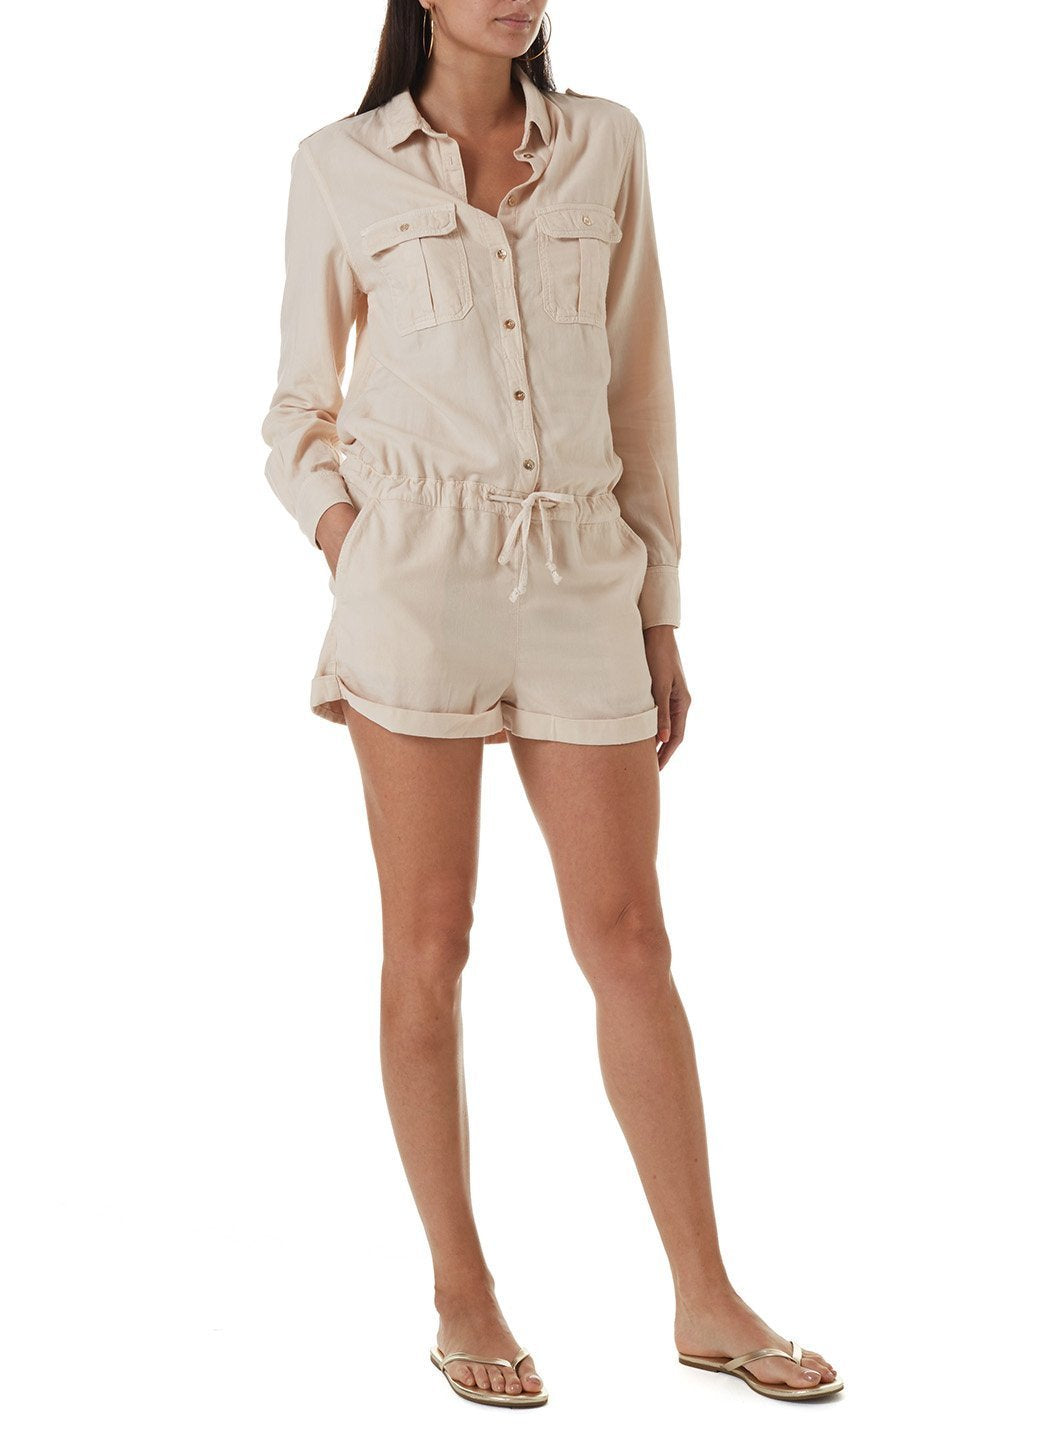 honour tan playsuit